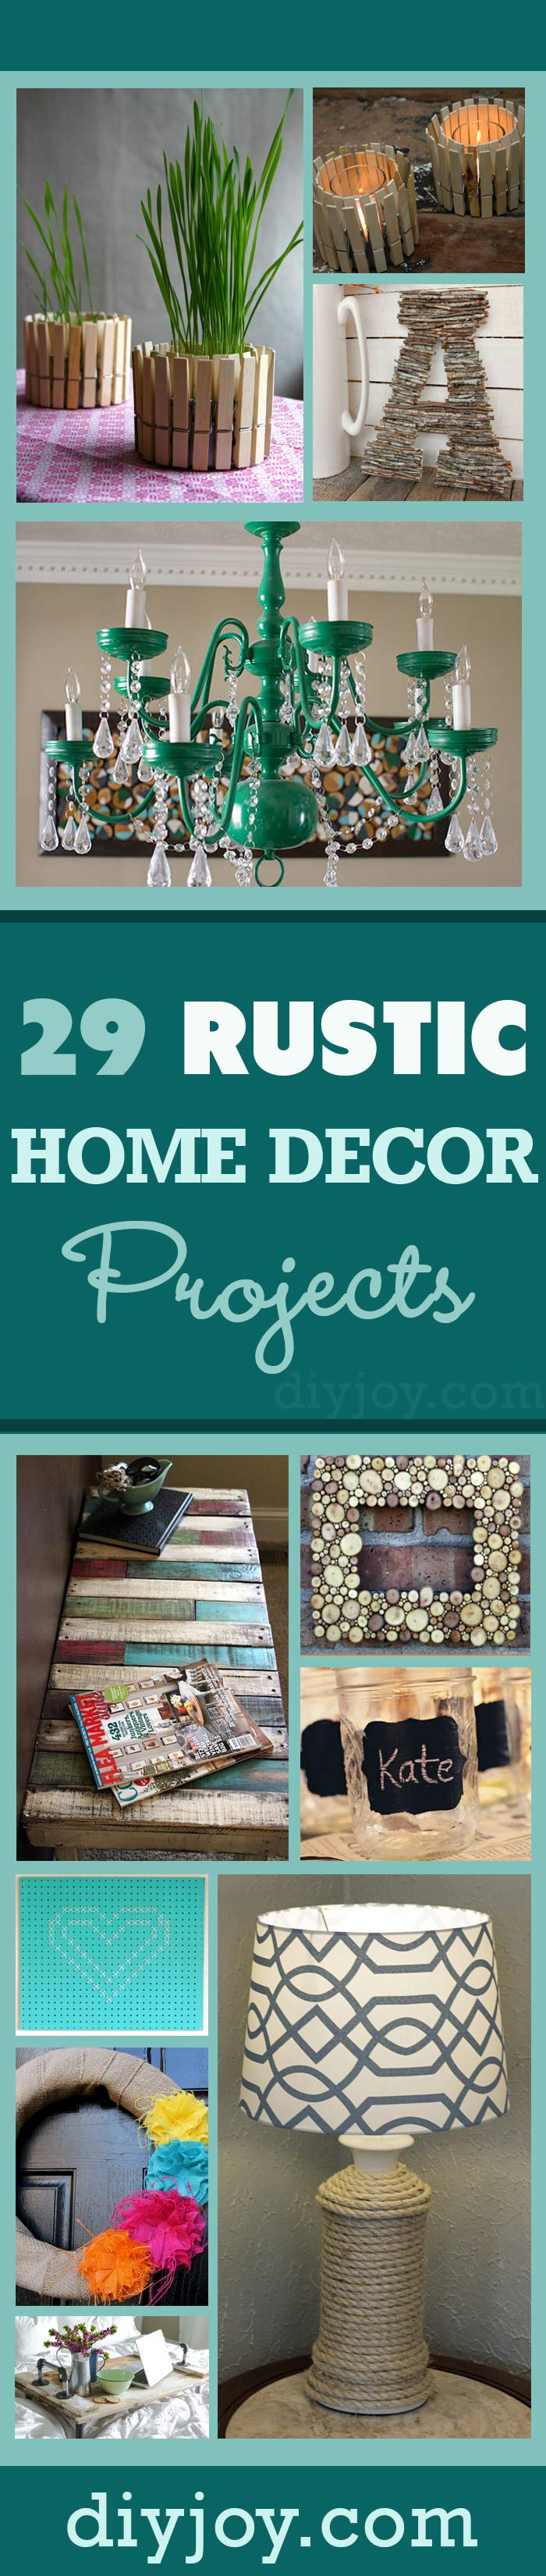 29 Rustic DIY Home Decor Ideas - DIY Joy